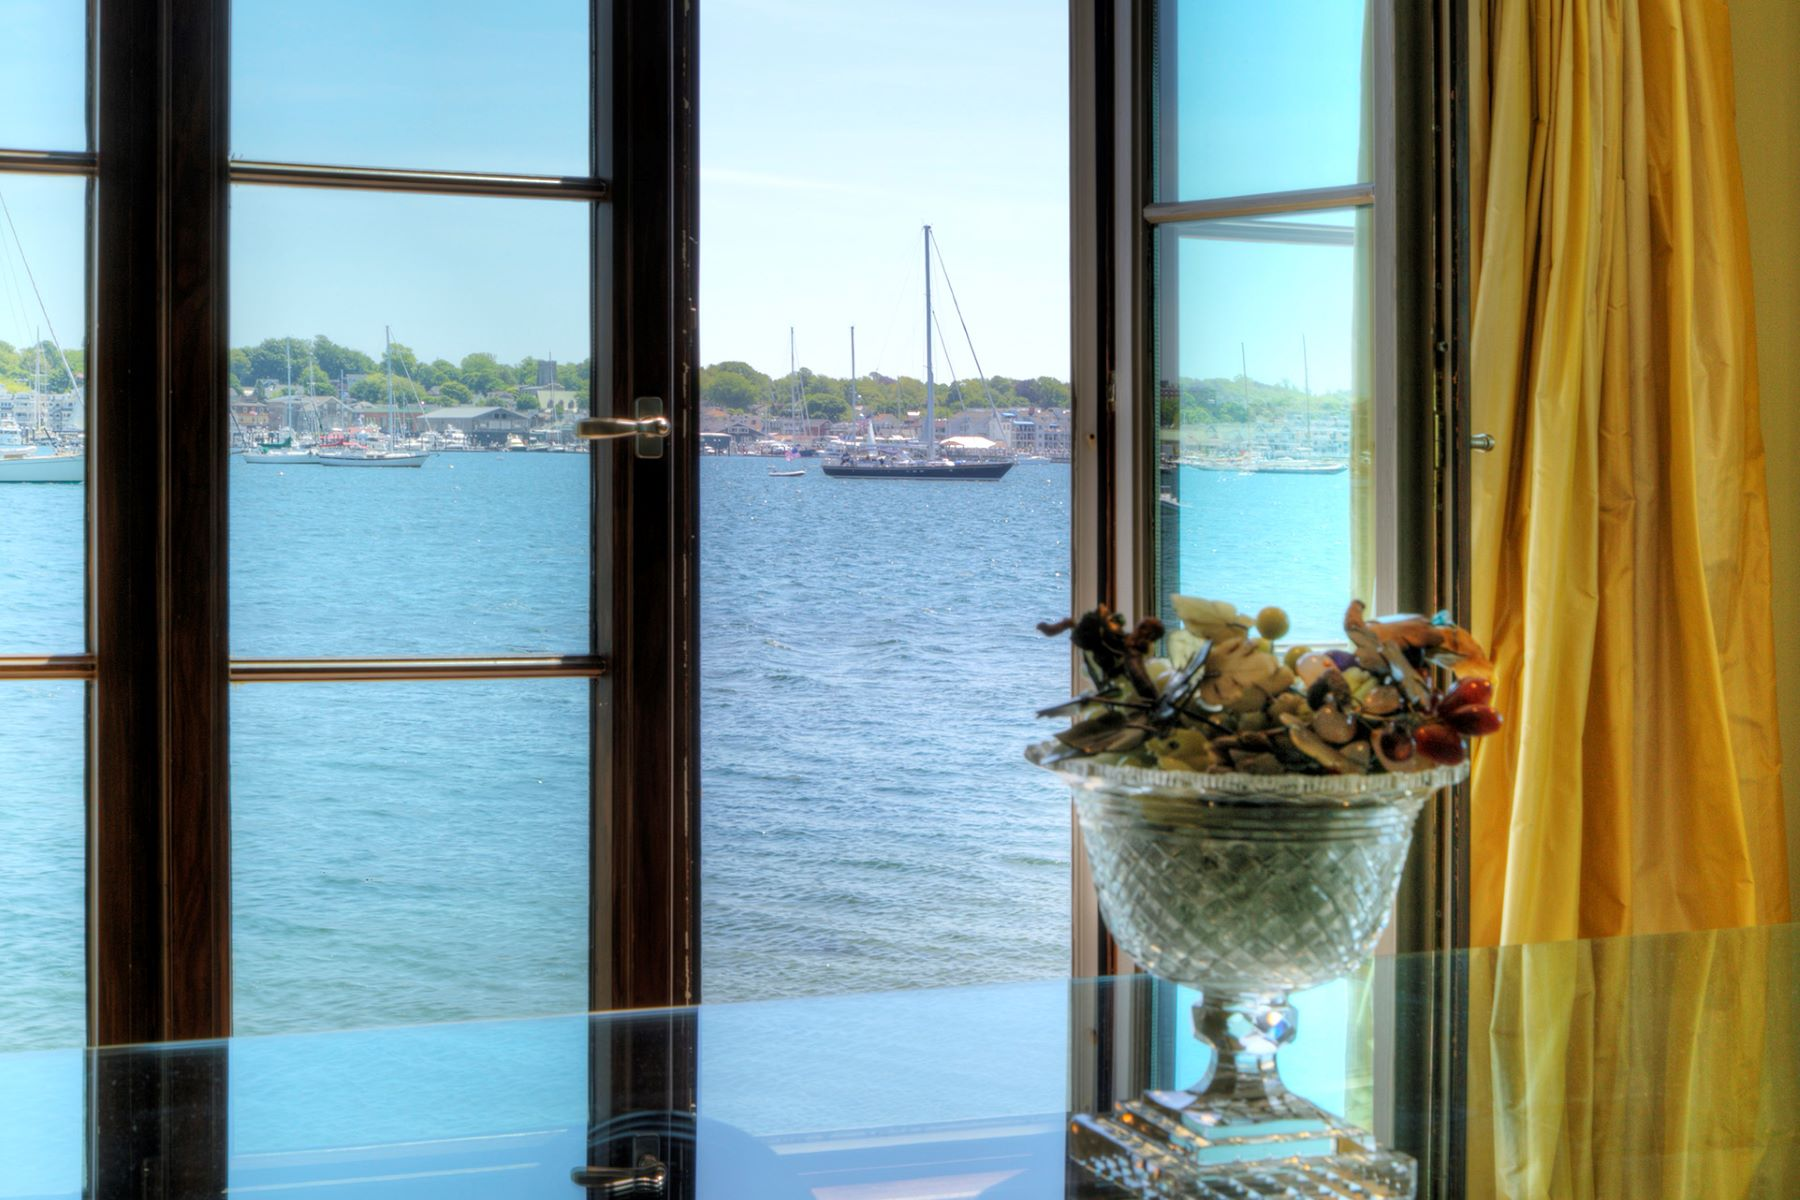 Condominium for Sale at Defenders Row on Goat Island 19 Defenders Row Goat Island Newport, Rhode Island, 02840 United States